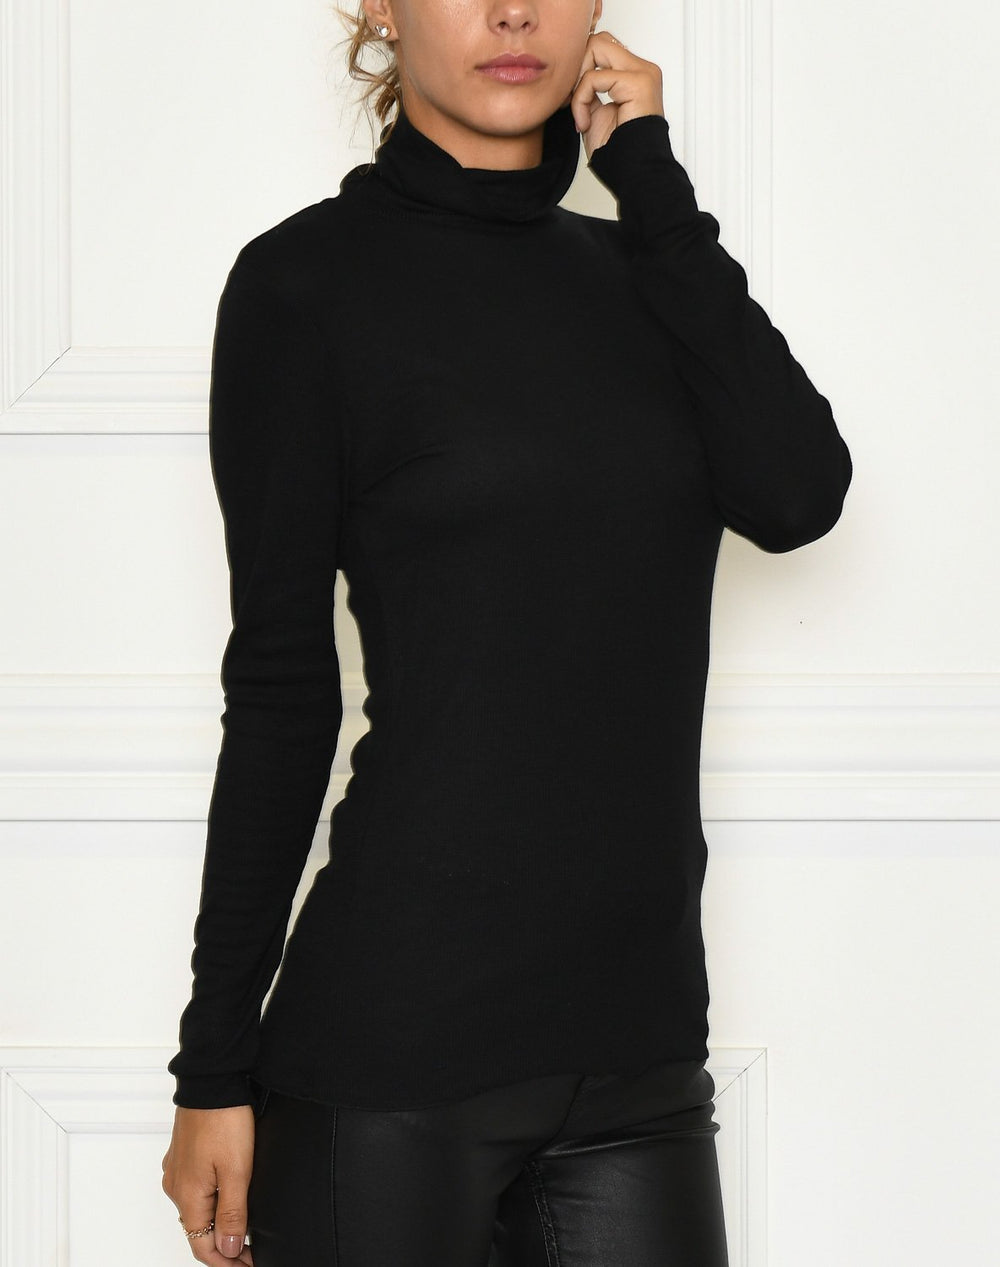 Soya Concept SC-Ryan 29 blouse black - Online-Mode